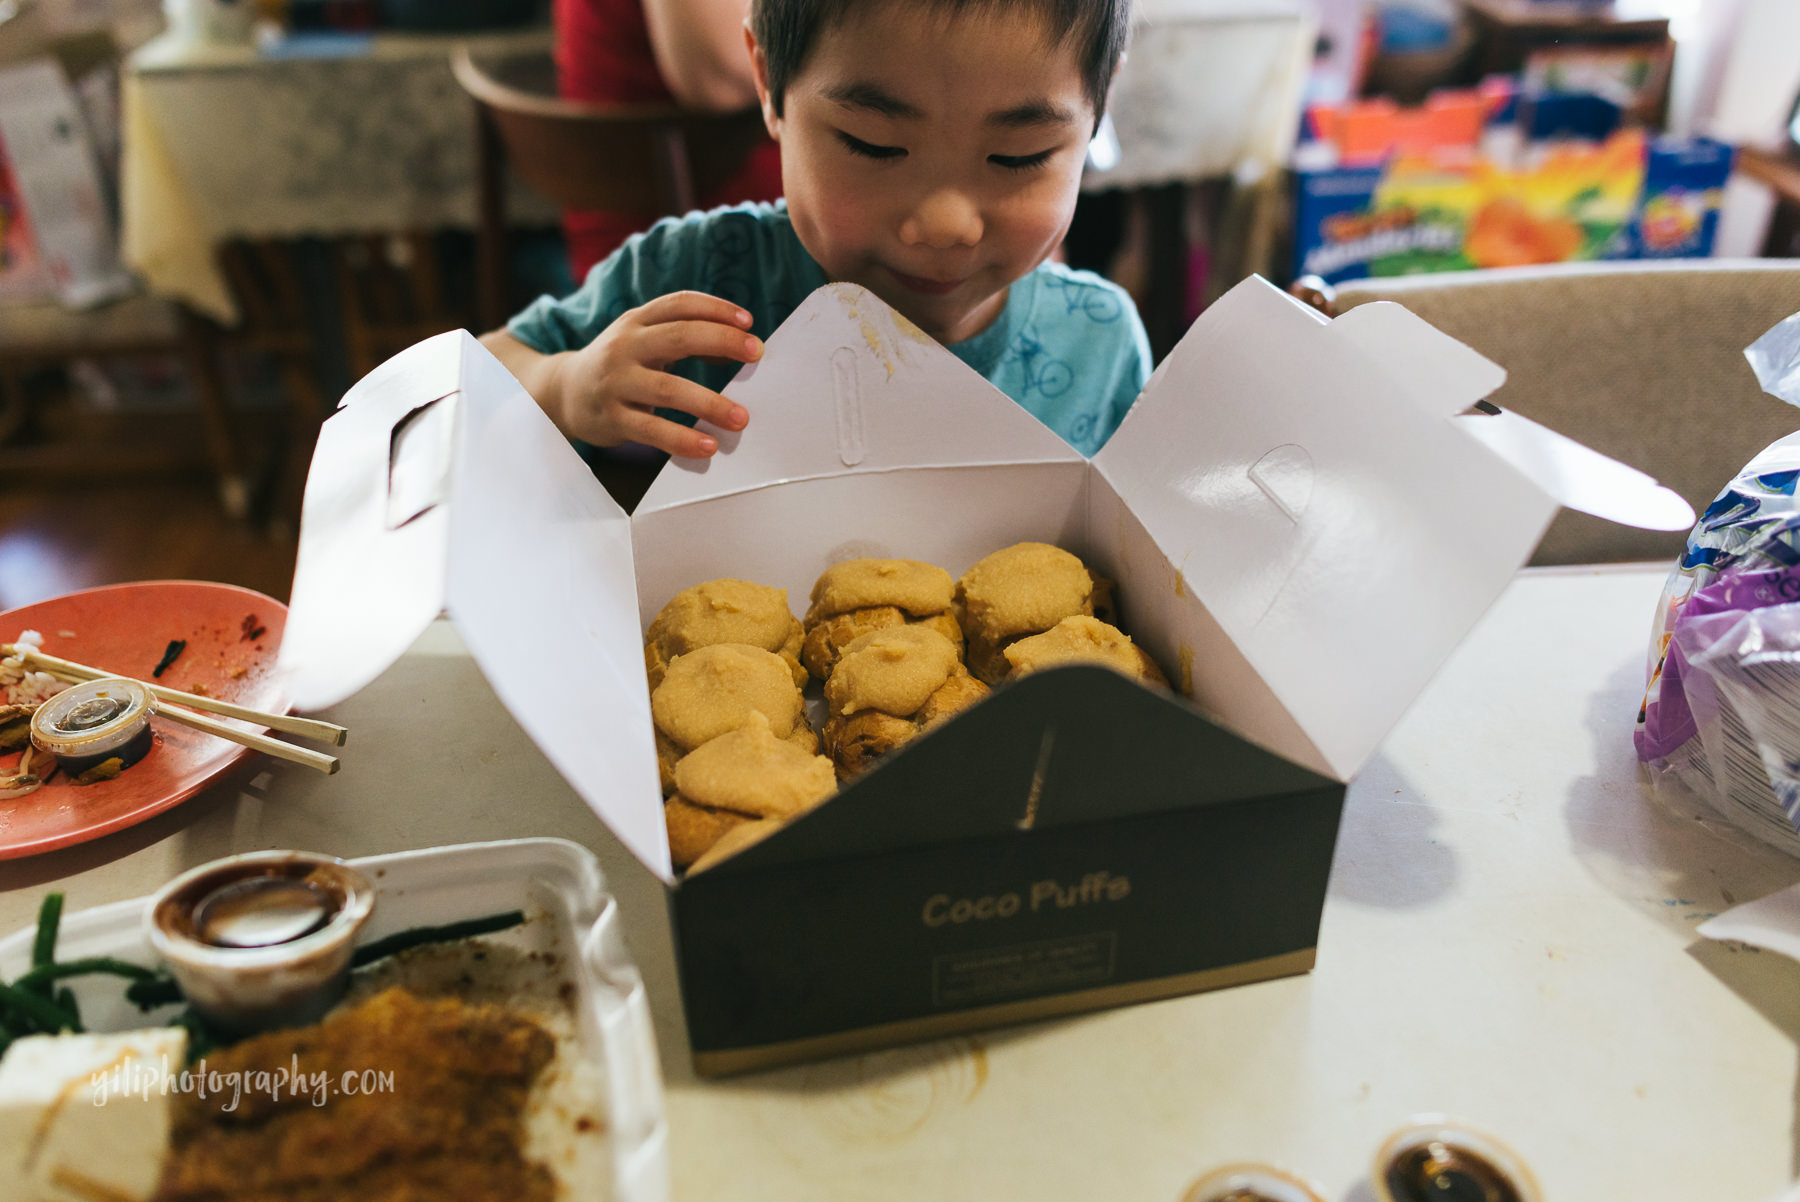 boy looking into box of cream puffs